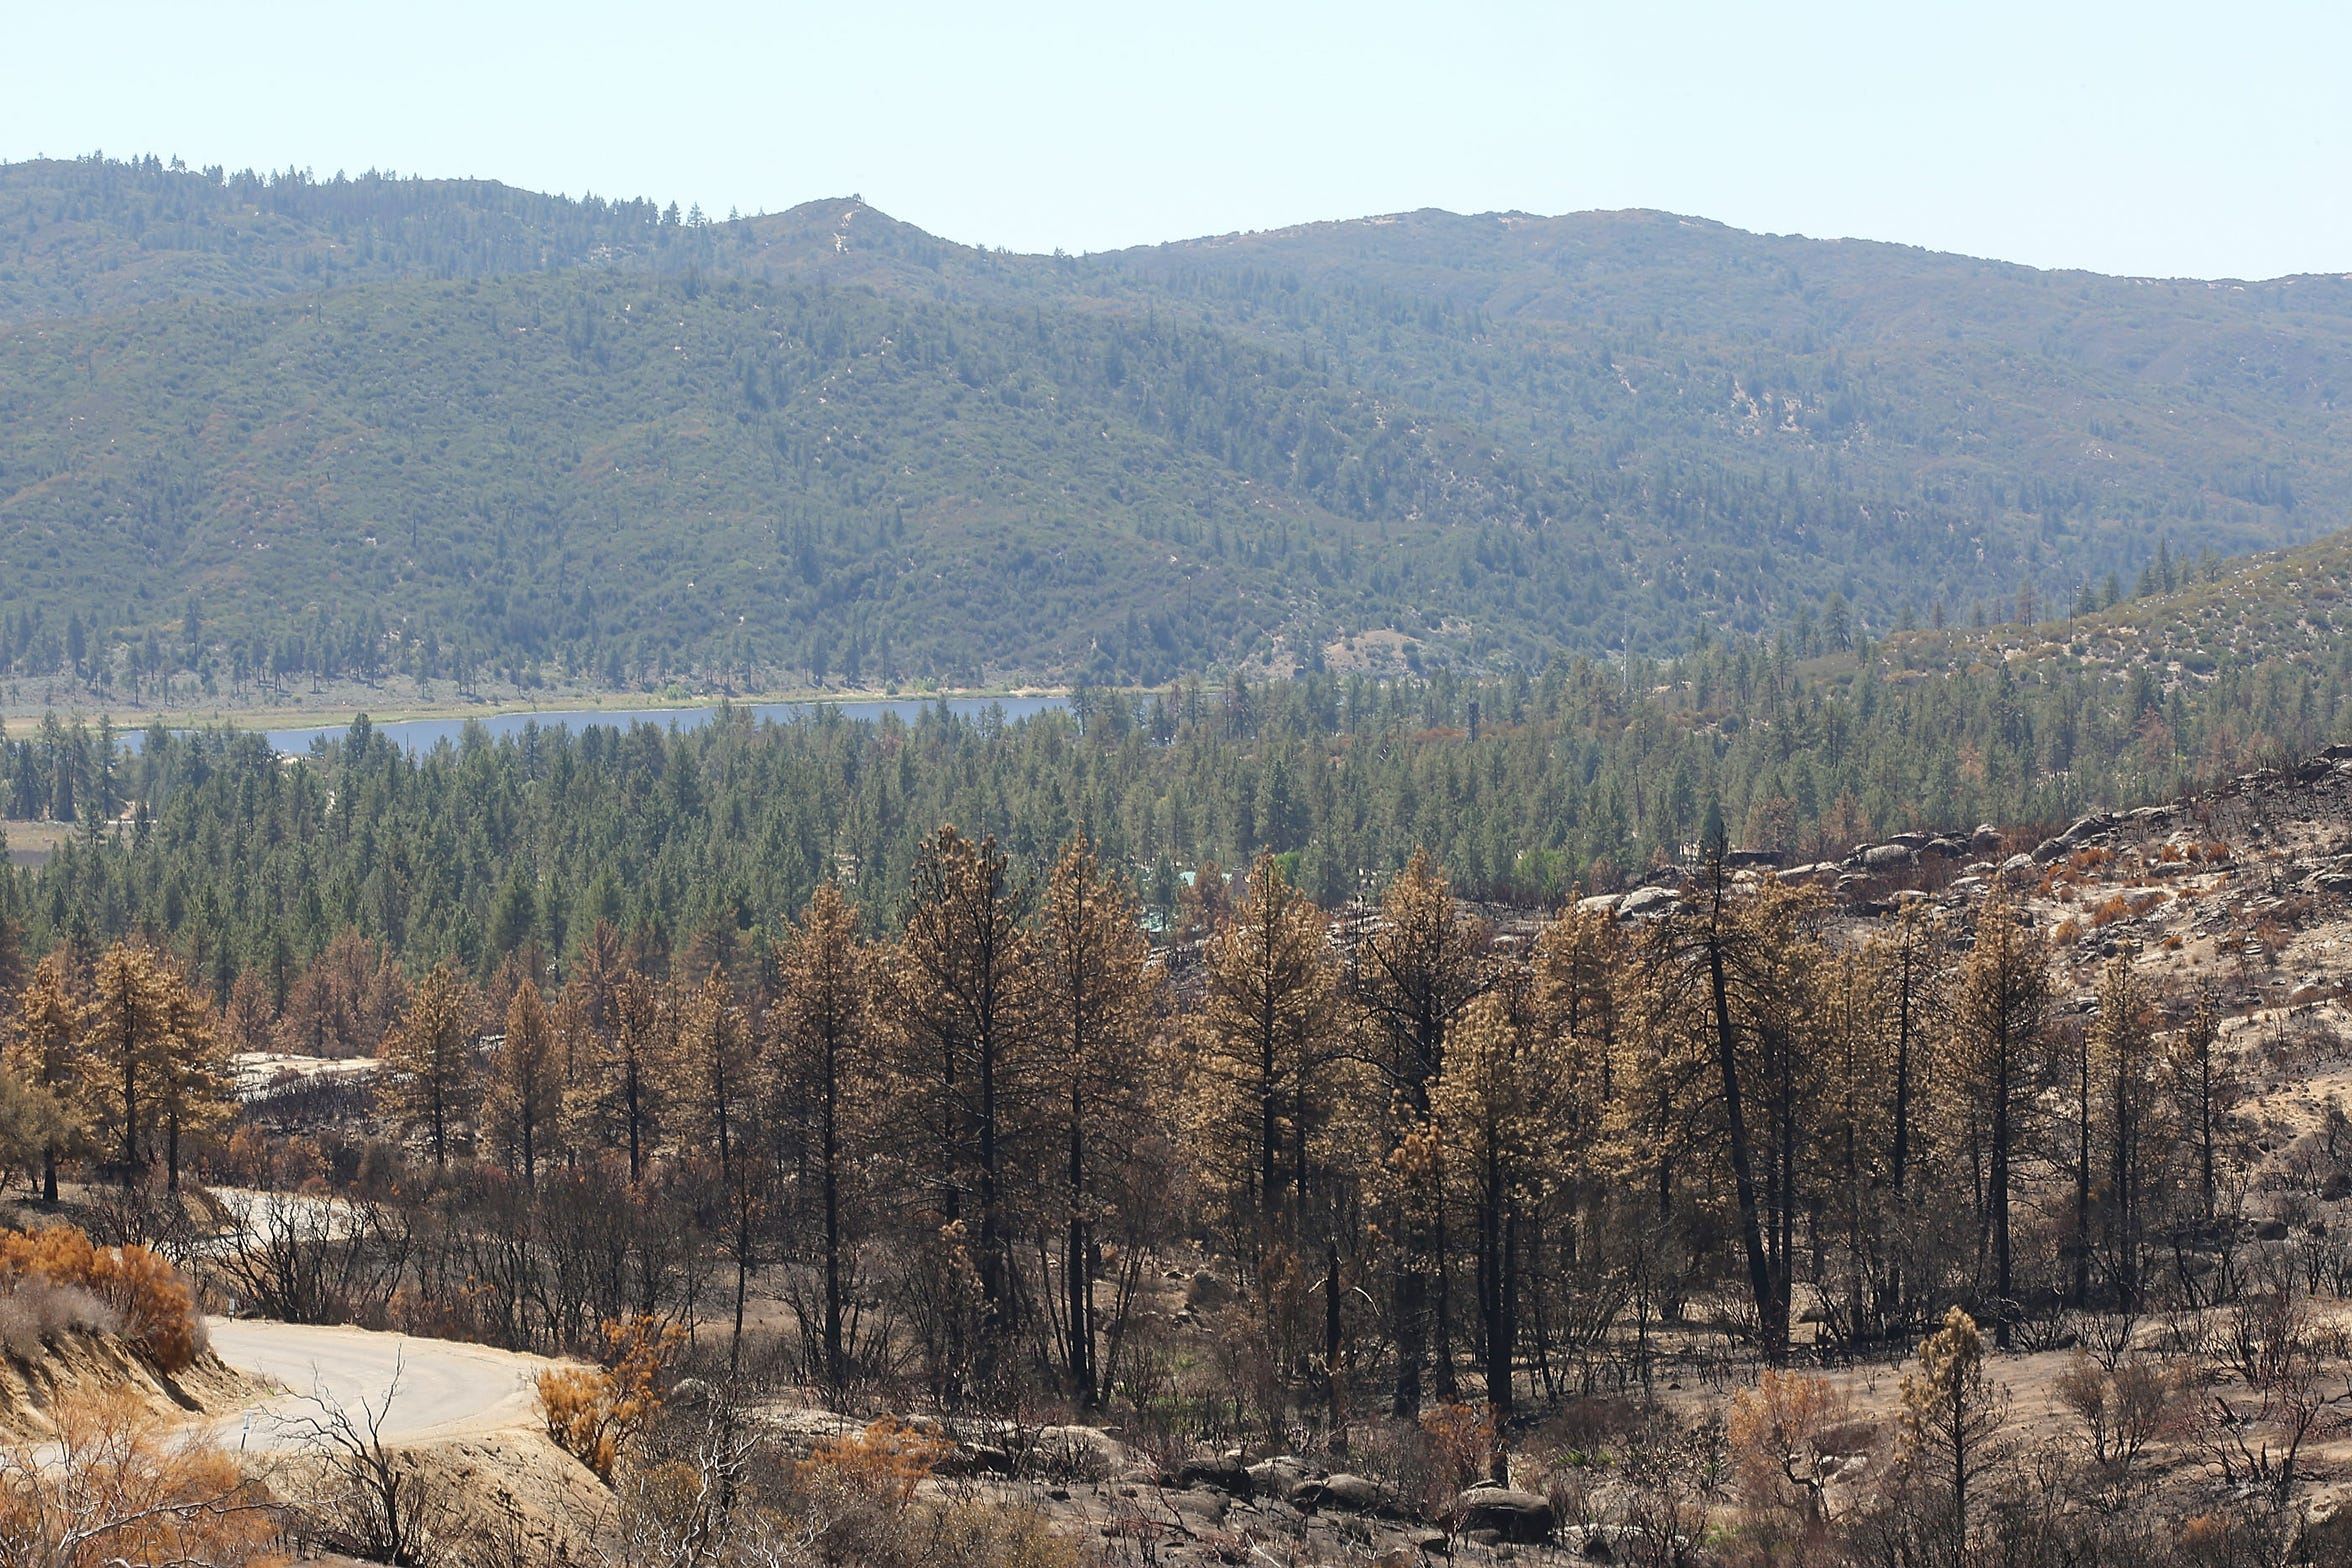 A patch of conifers were damaged in a heavily-burned area of the Cranston Fire in the San Jacinto Wilderness. Lake Hemet can be seen in the distance.